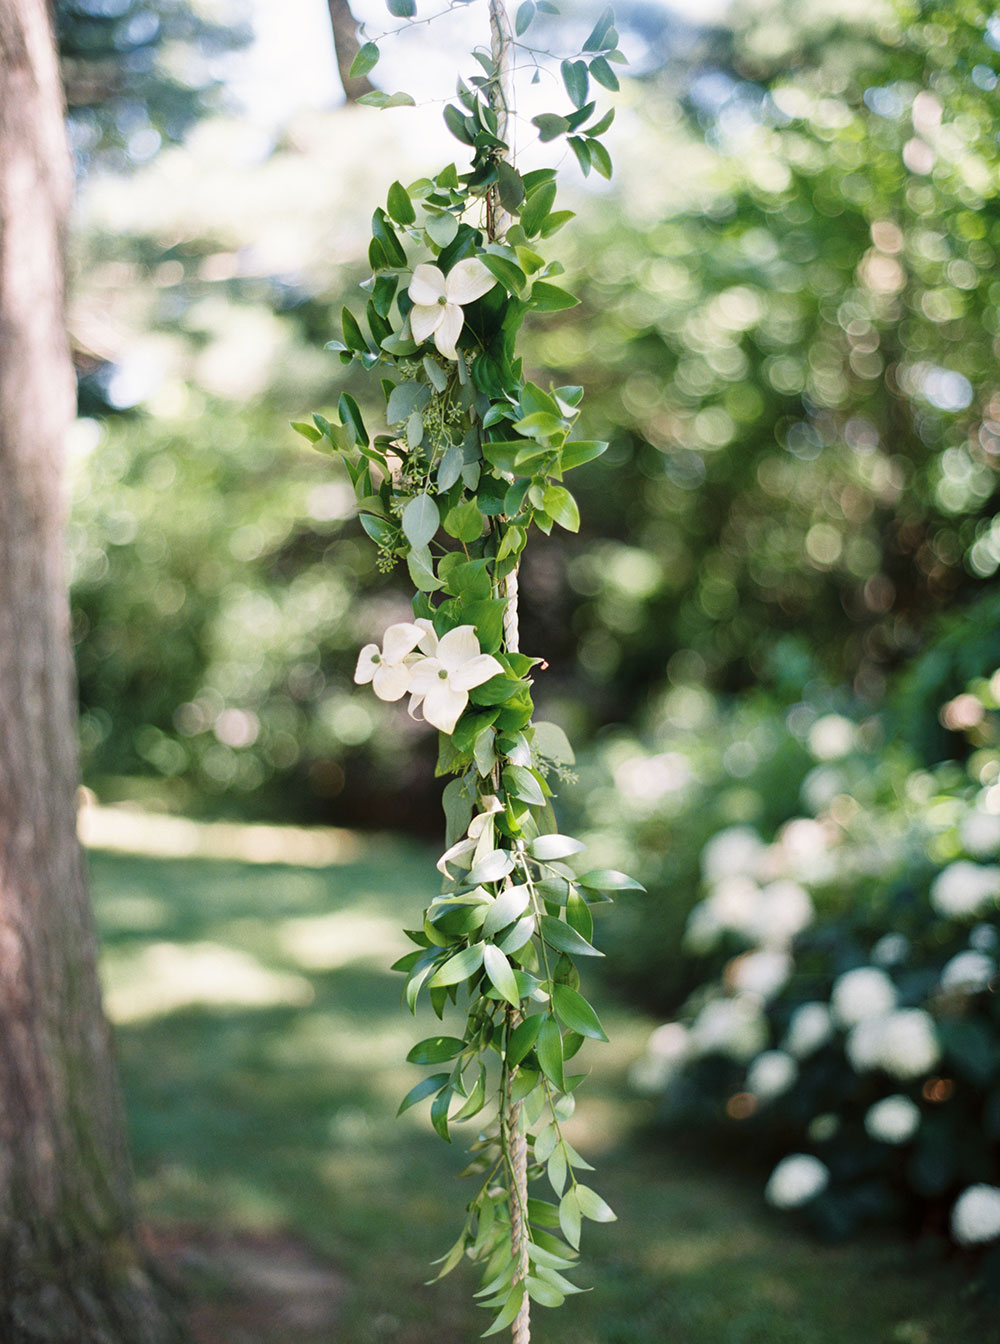 kurtz-orchards-wedding-gracewood-estate-niagara-on-the-lake-photo-by-katie-nicolle-photography-0017.JPG